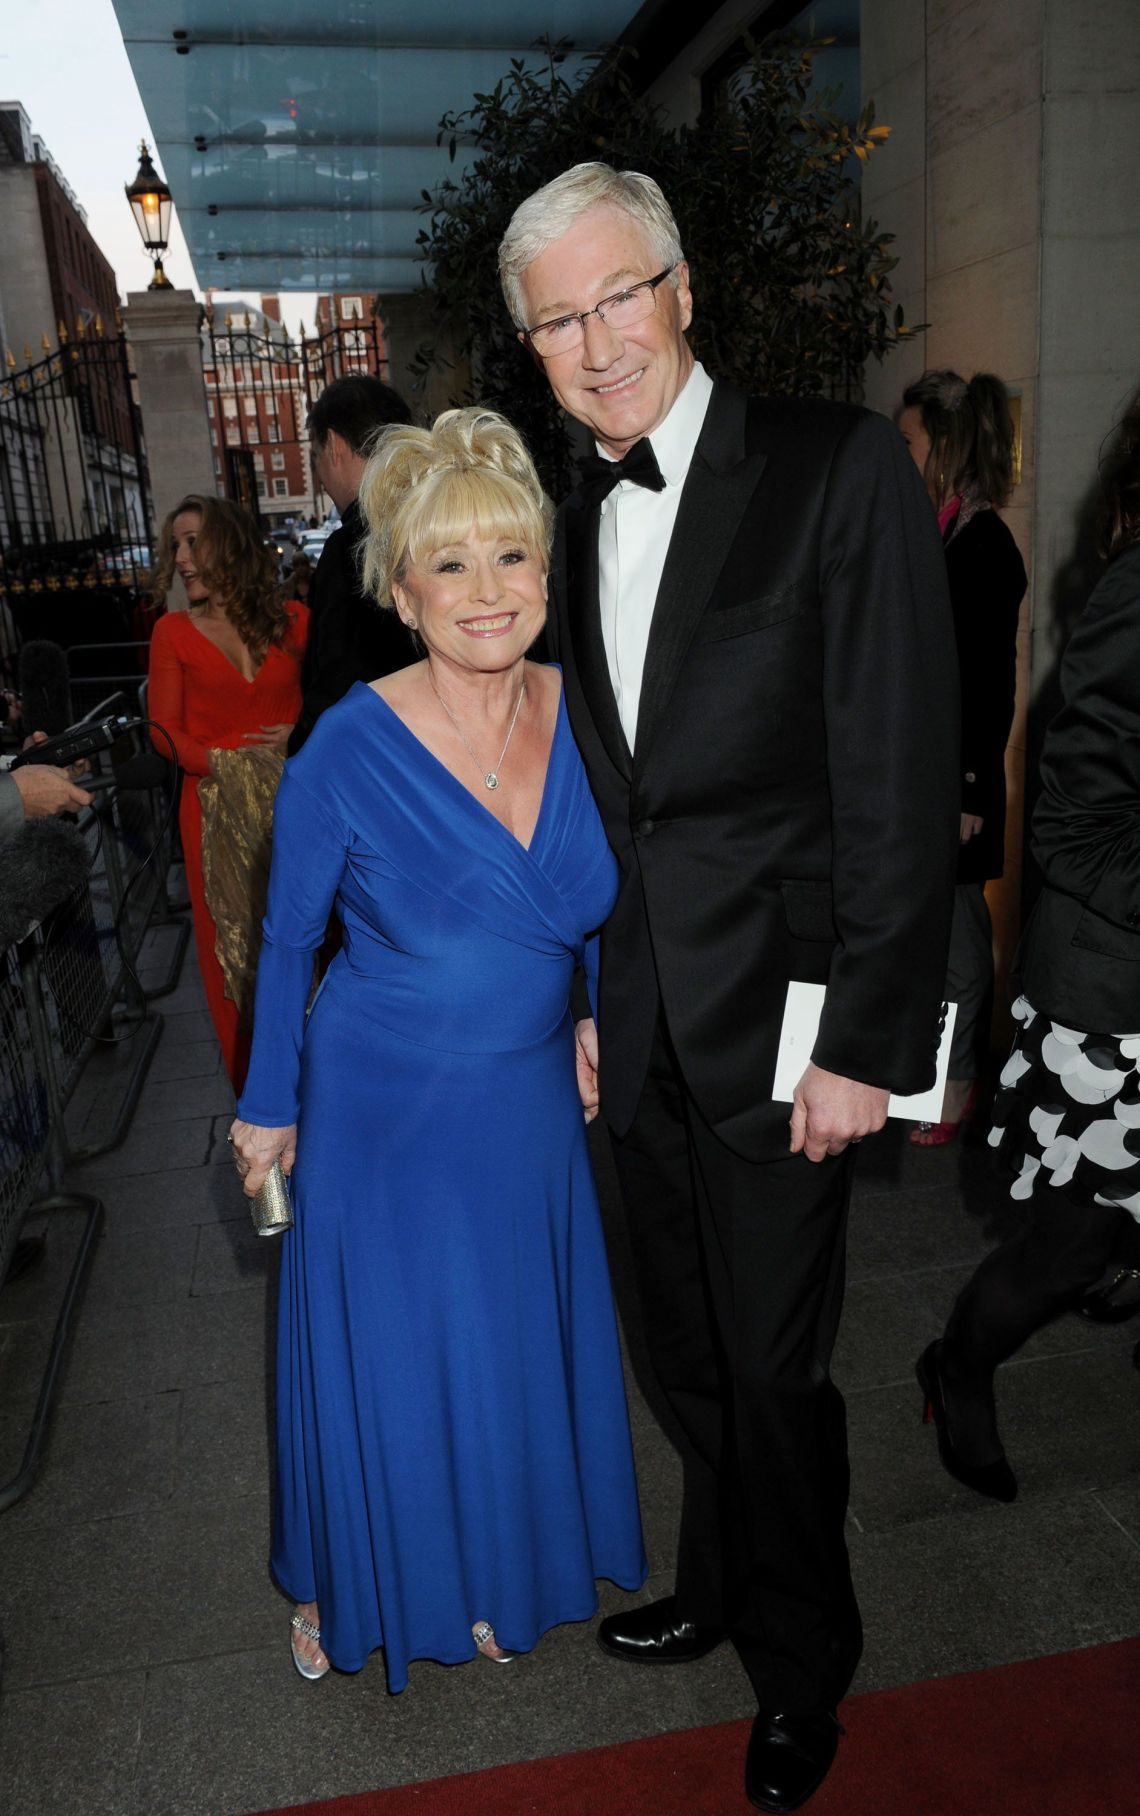 Dame Barbara Windsor and Paul O'Grady in 2010